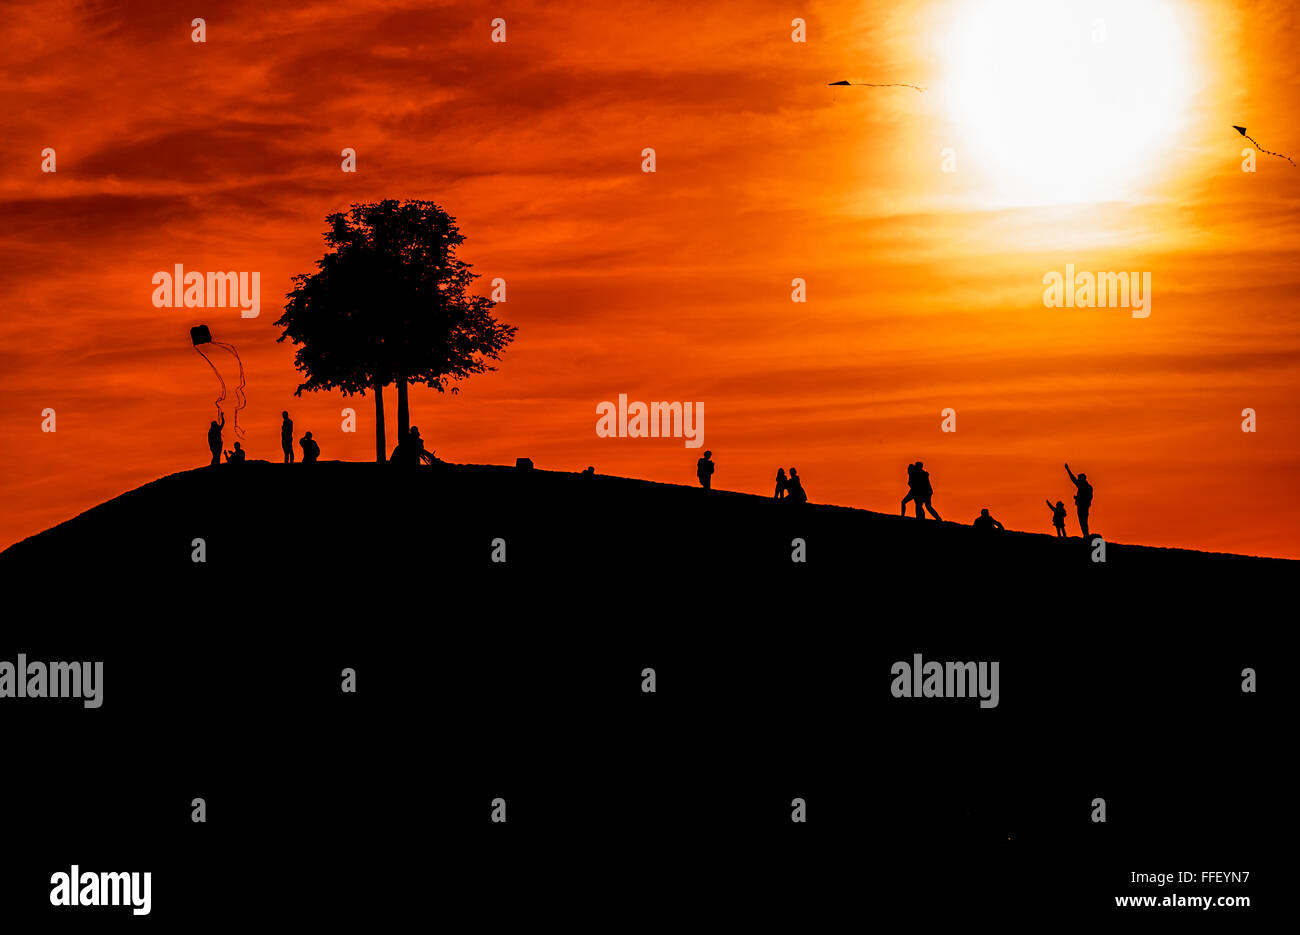 silhouettes of people on a hill, tree and various persons flying a kite at dusk - Stock Image